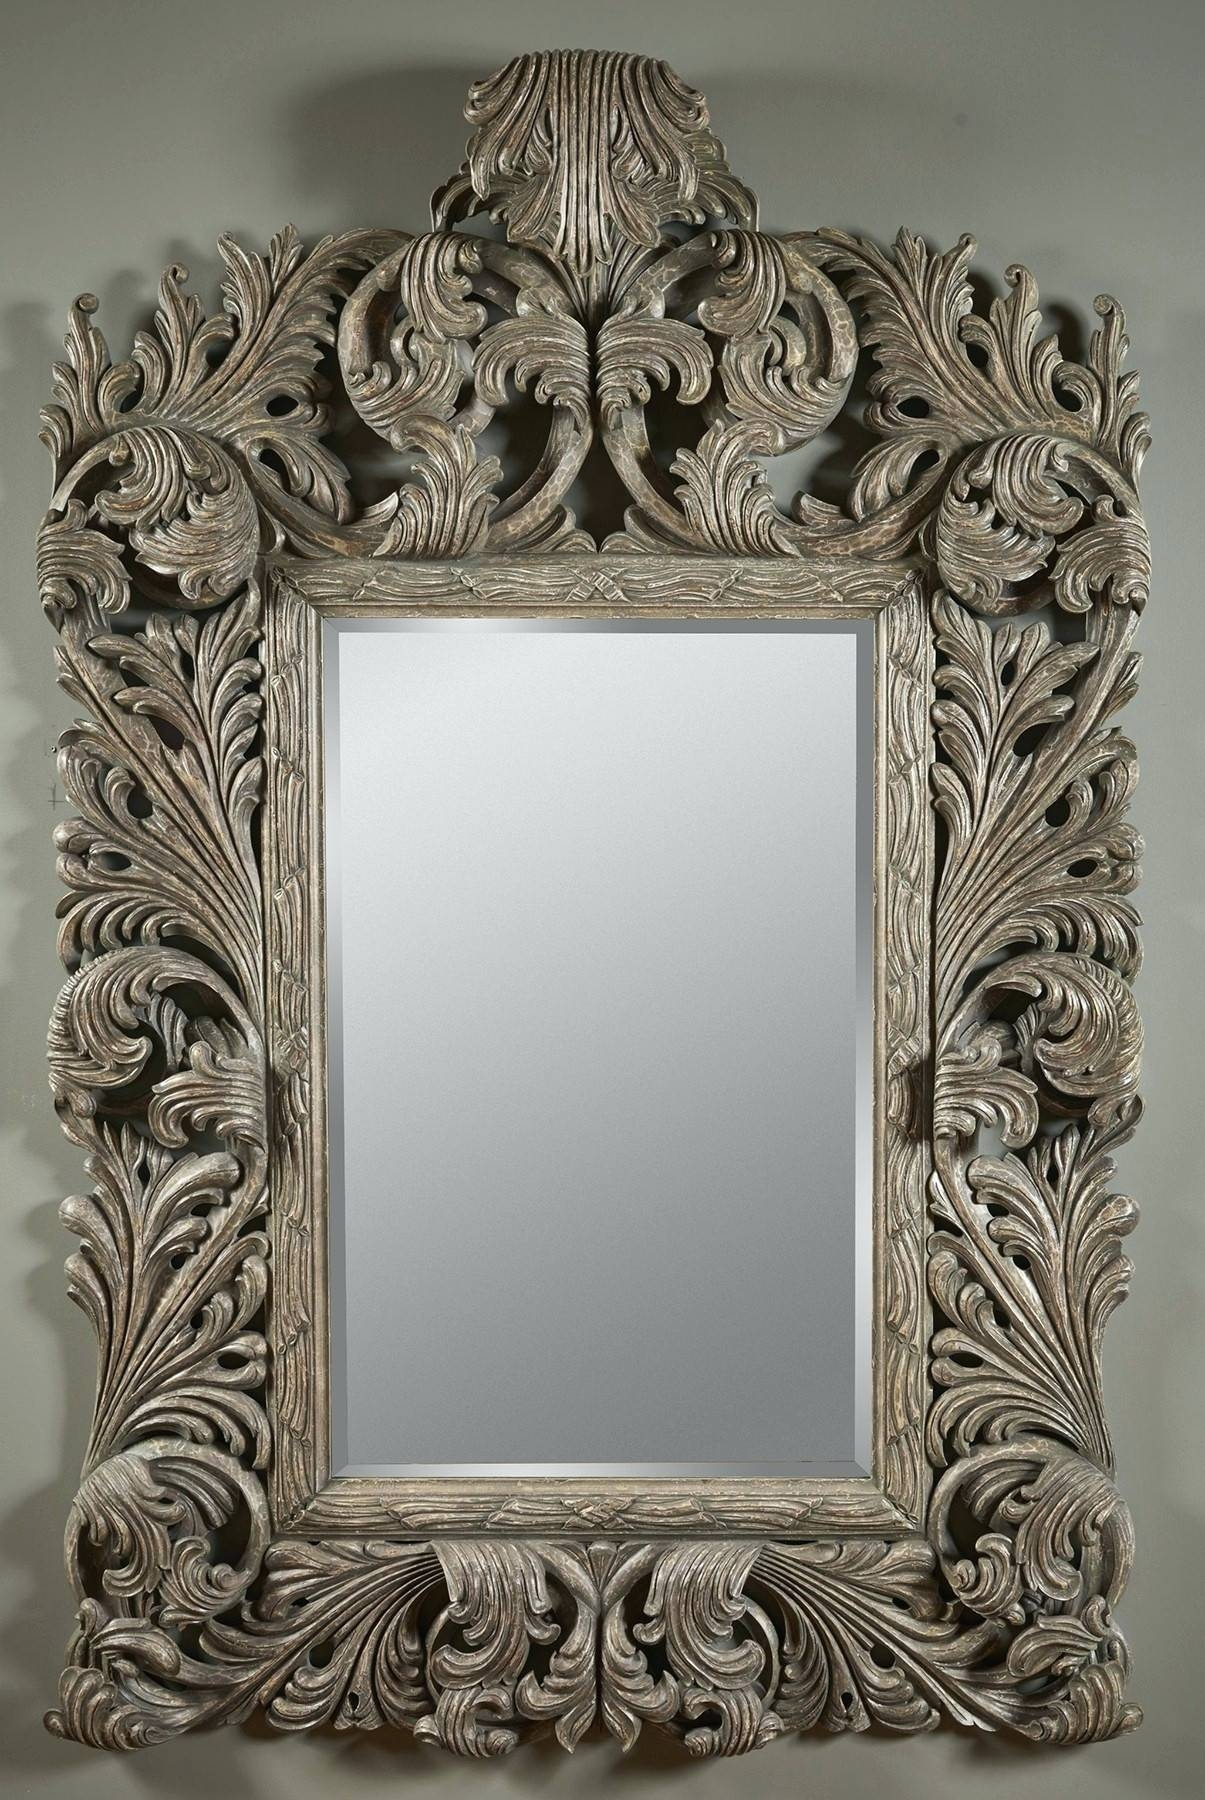 Wall Mirrors ~ Tuscan Style Wall Mirrors Hand Carved Silver Gilded Within Silver Gilded Mirrors (View 15 of 15)